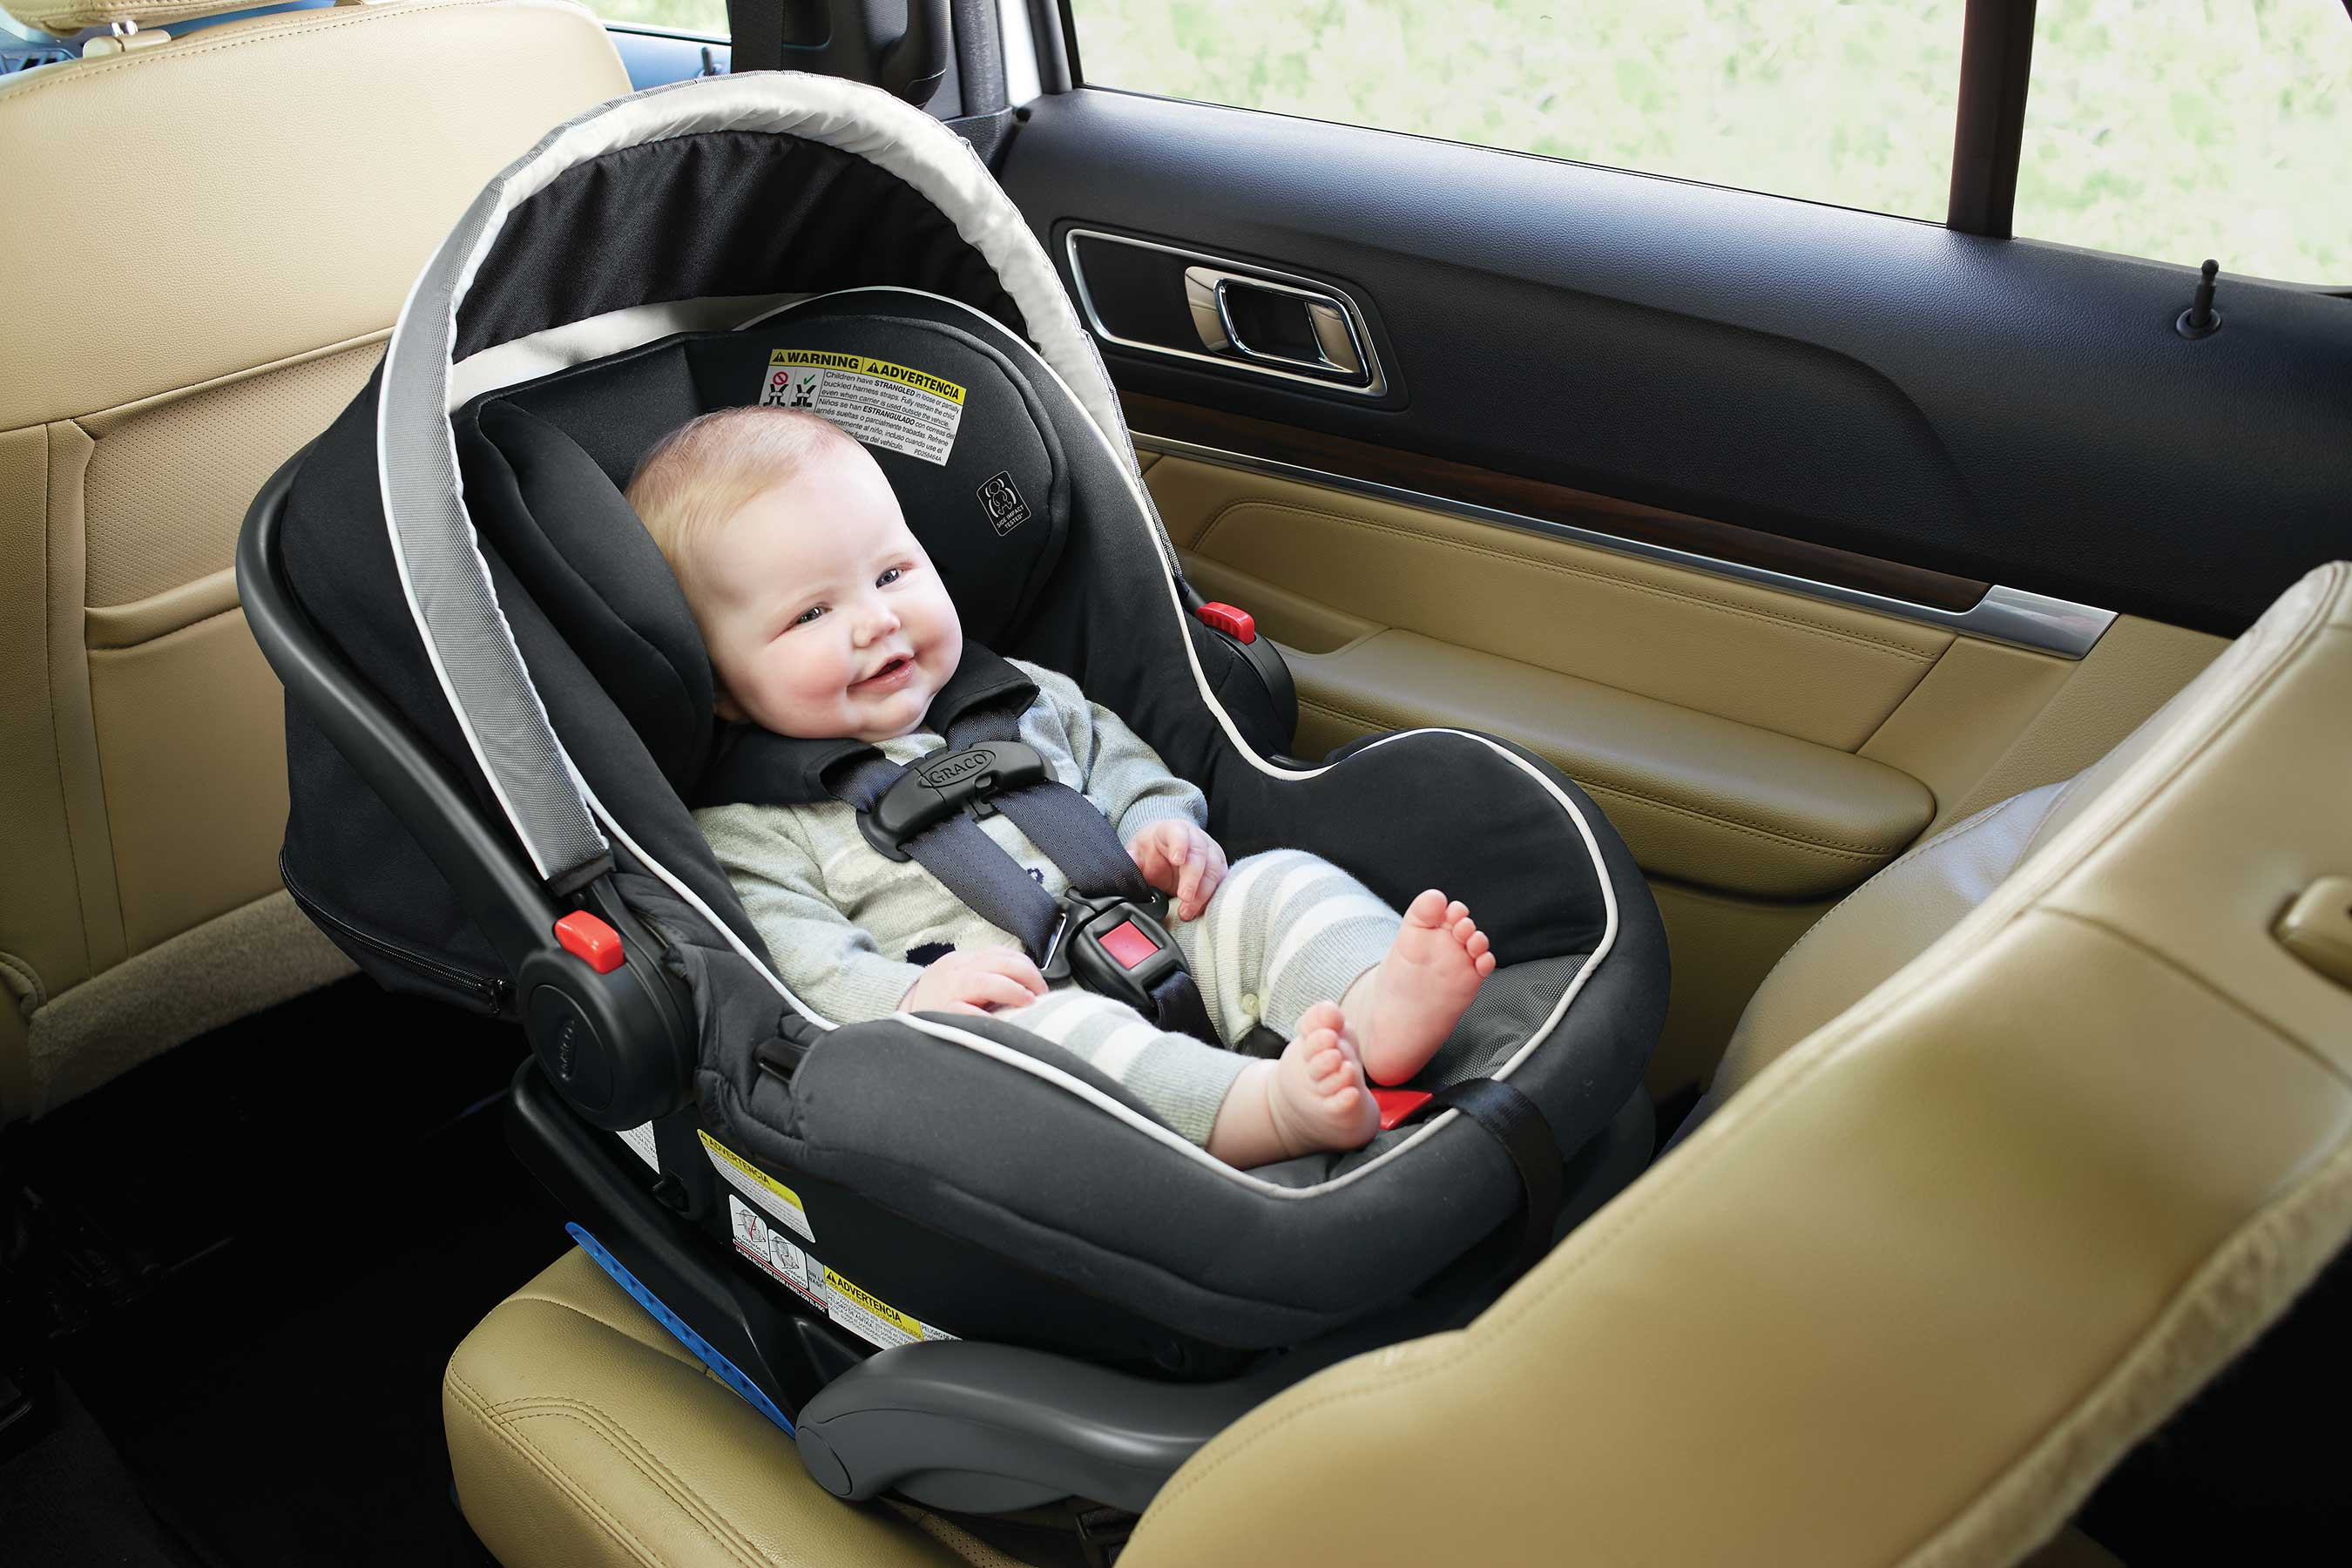 Buy A Car Seat Cover For Your Child